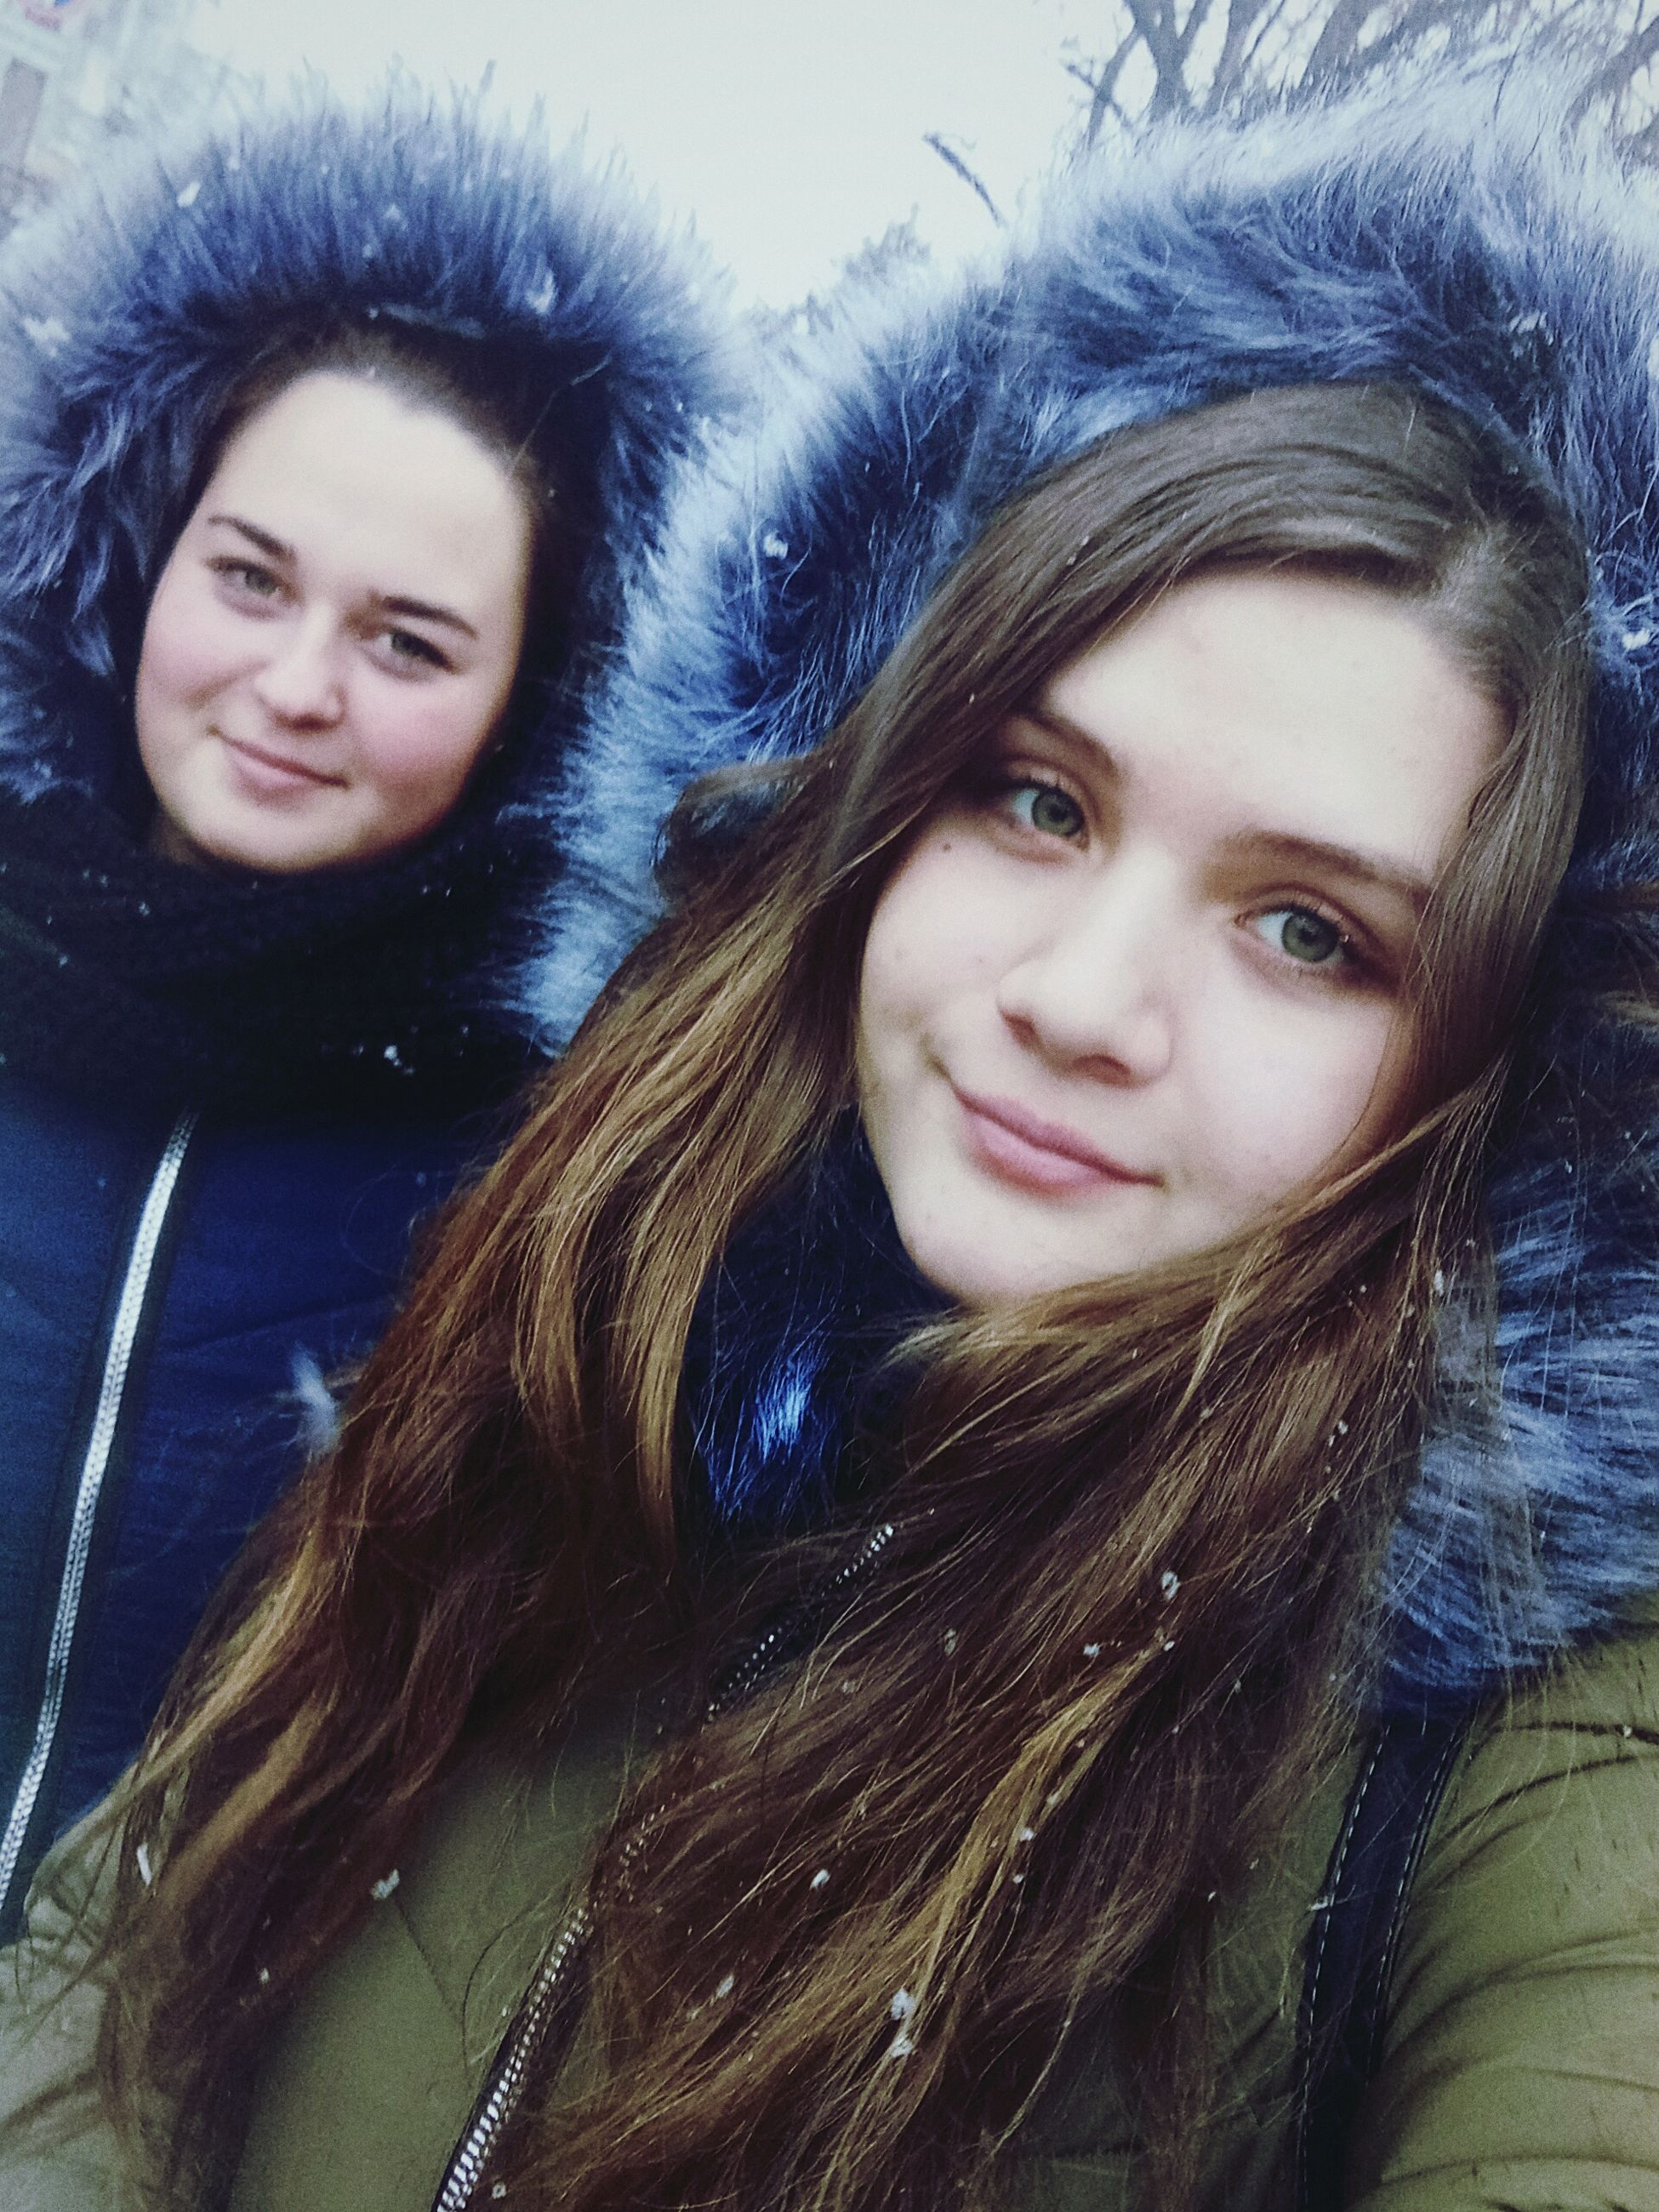 looking at camera, portrait, real people, winter, two people, warm clothing, smiling, young women, cold temperature, front view, long hair, teenage girls, lifestyles, young adult, jacket, togetherness, happiness, leisure activity, snow, friendship, outdoors, beautiful woman, day, nature, close-up